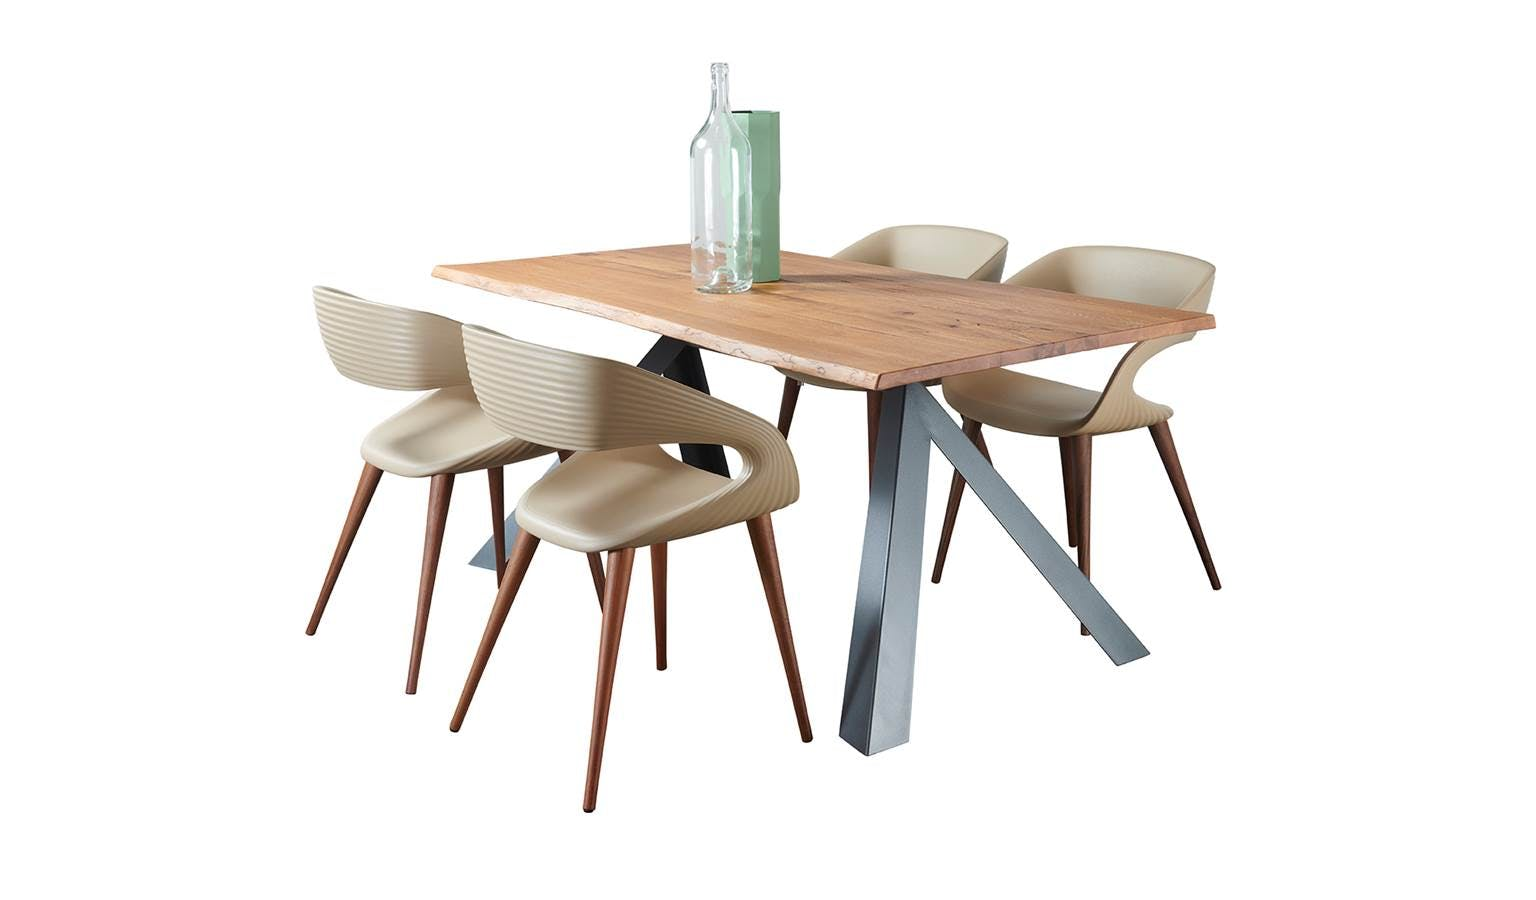 Nevada Italian Dining Table